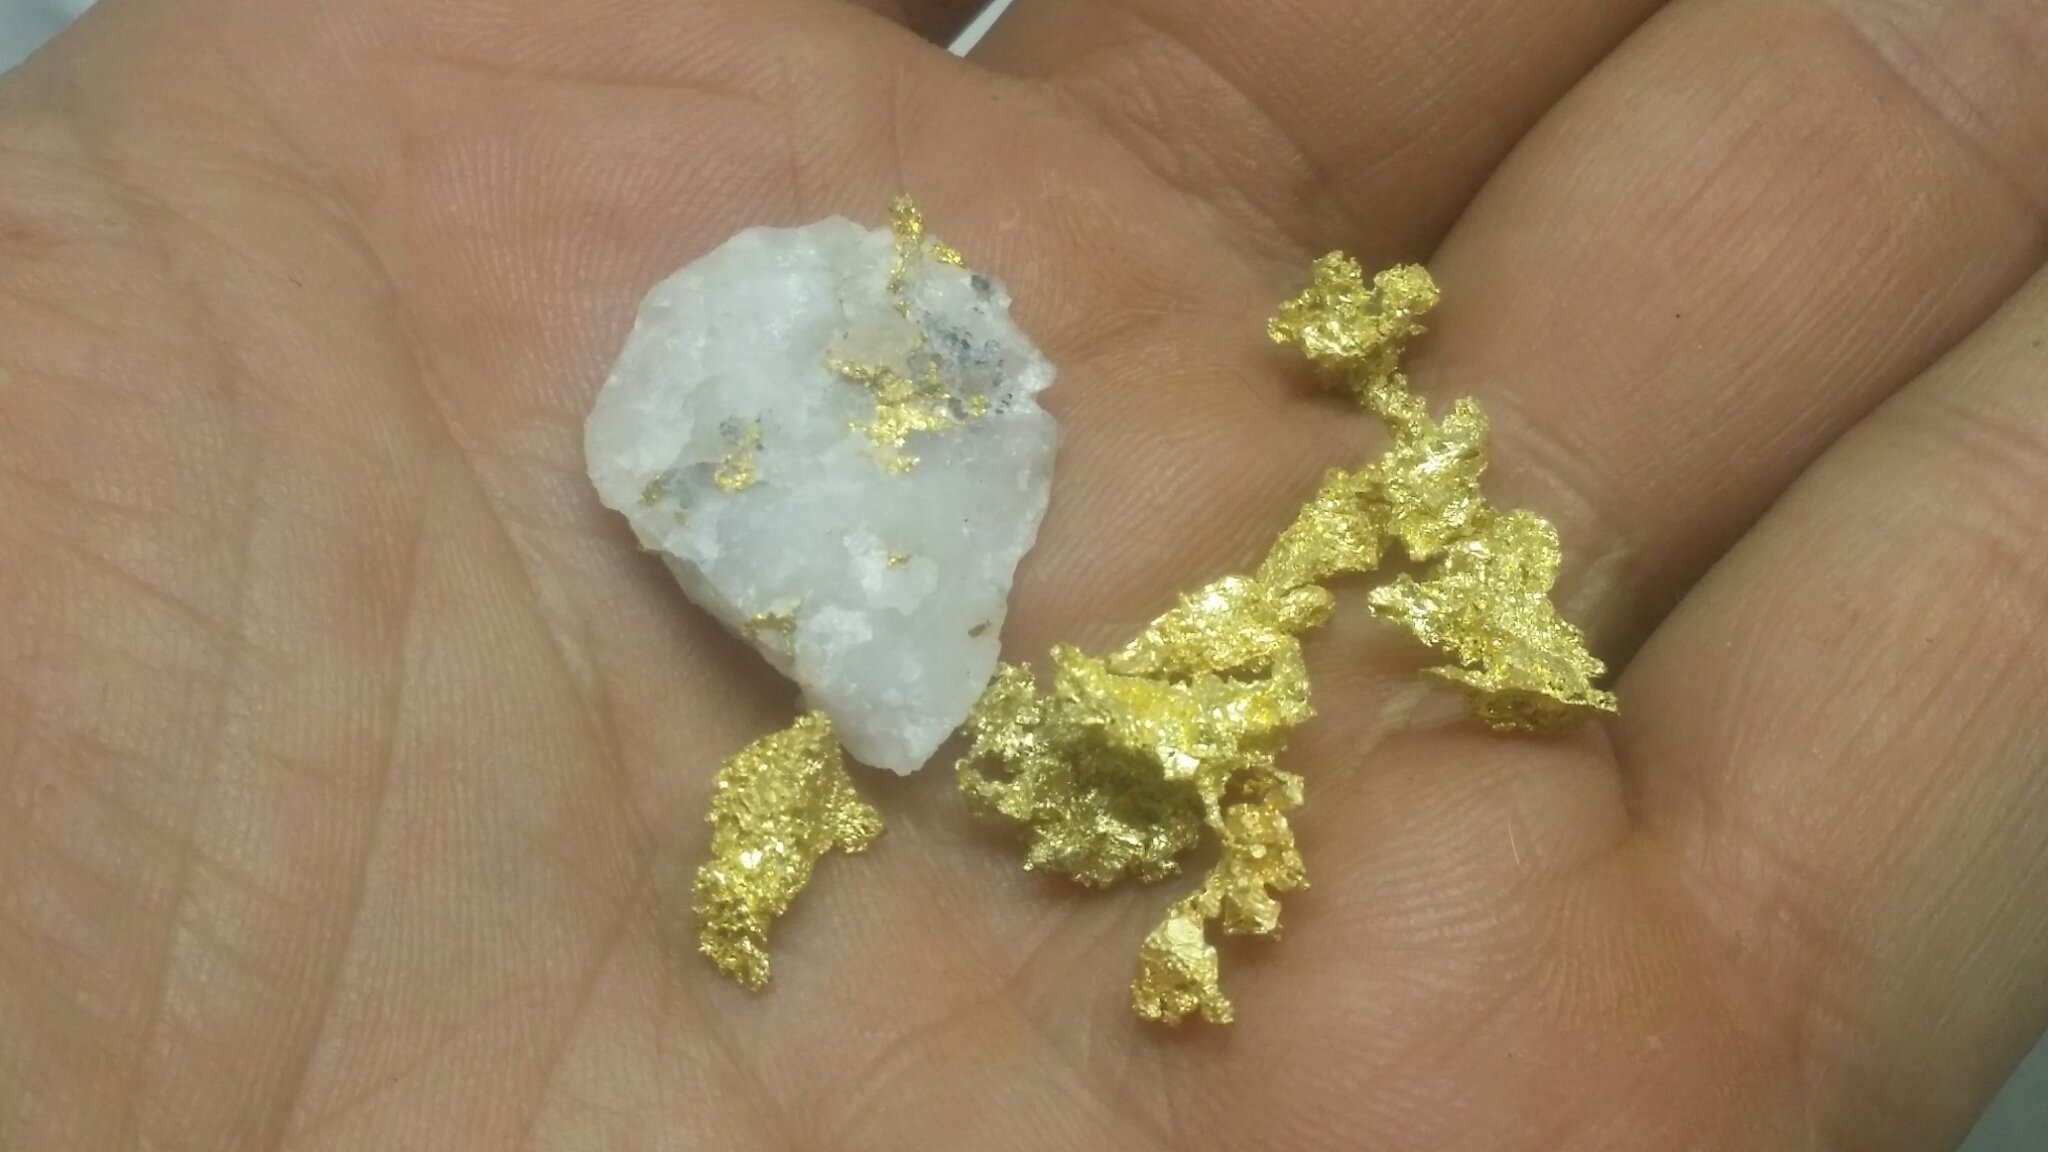 Worlds rarest paydirt - Colorado Quartz gold mine 00031